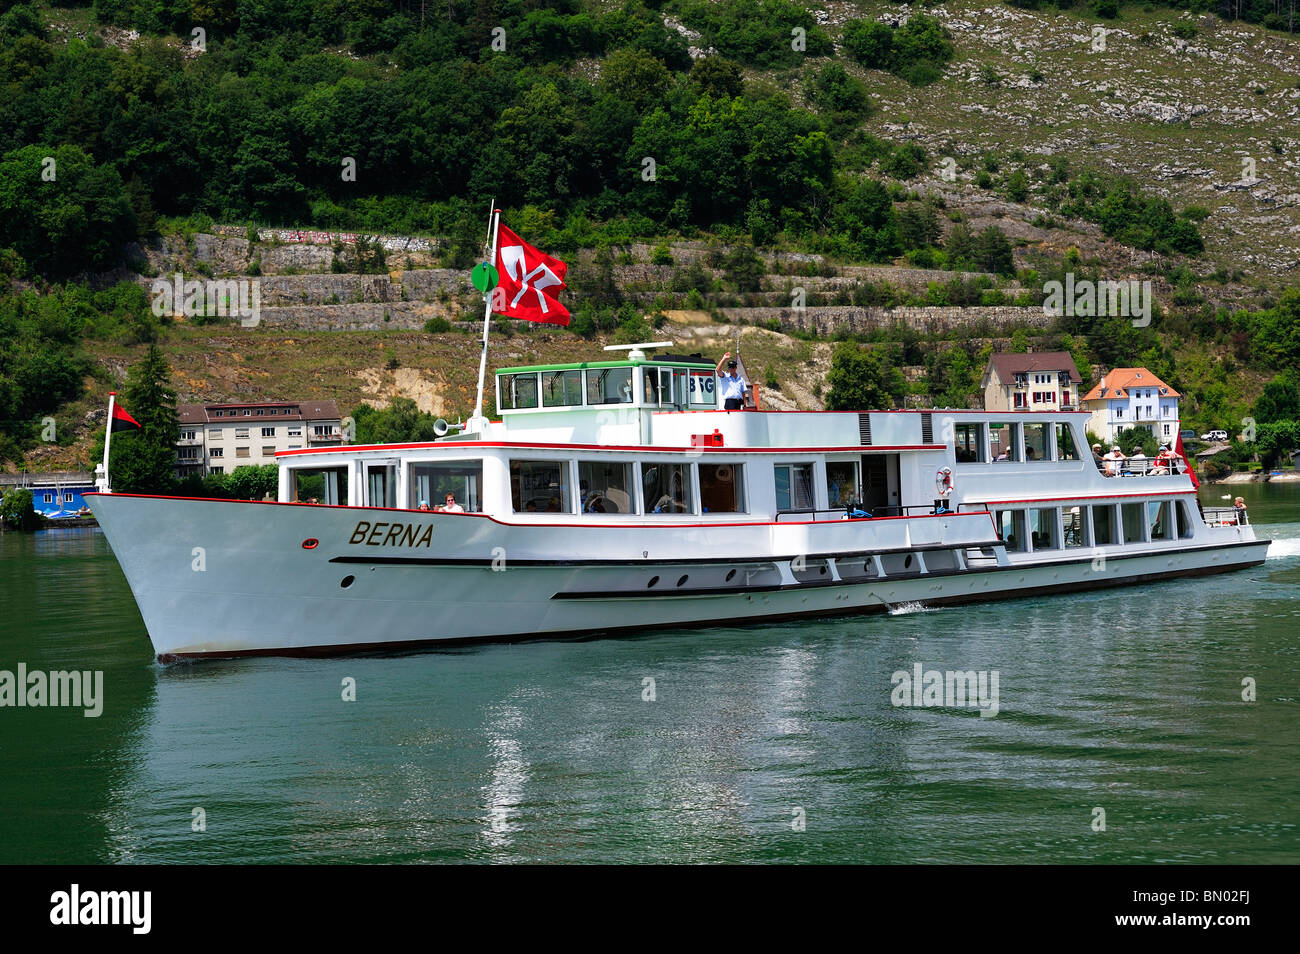 The Swiss lake cruiser Berna setting out from the port at Biel (Bienne) on the Lac de Biel (Bielersee), the captain - Stock Image